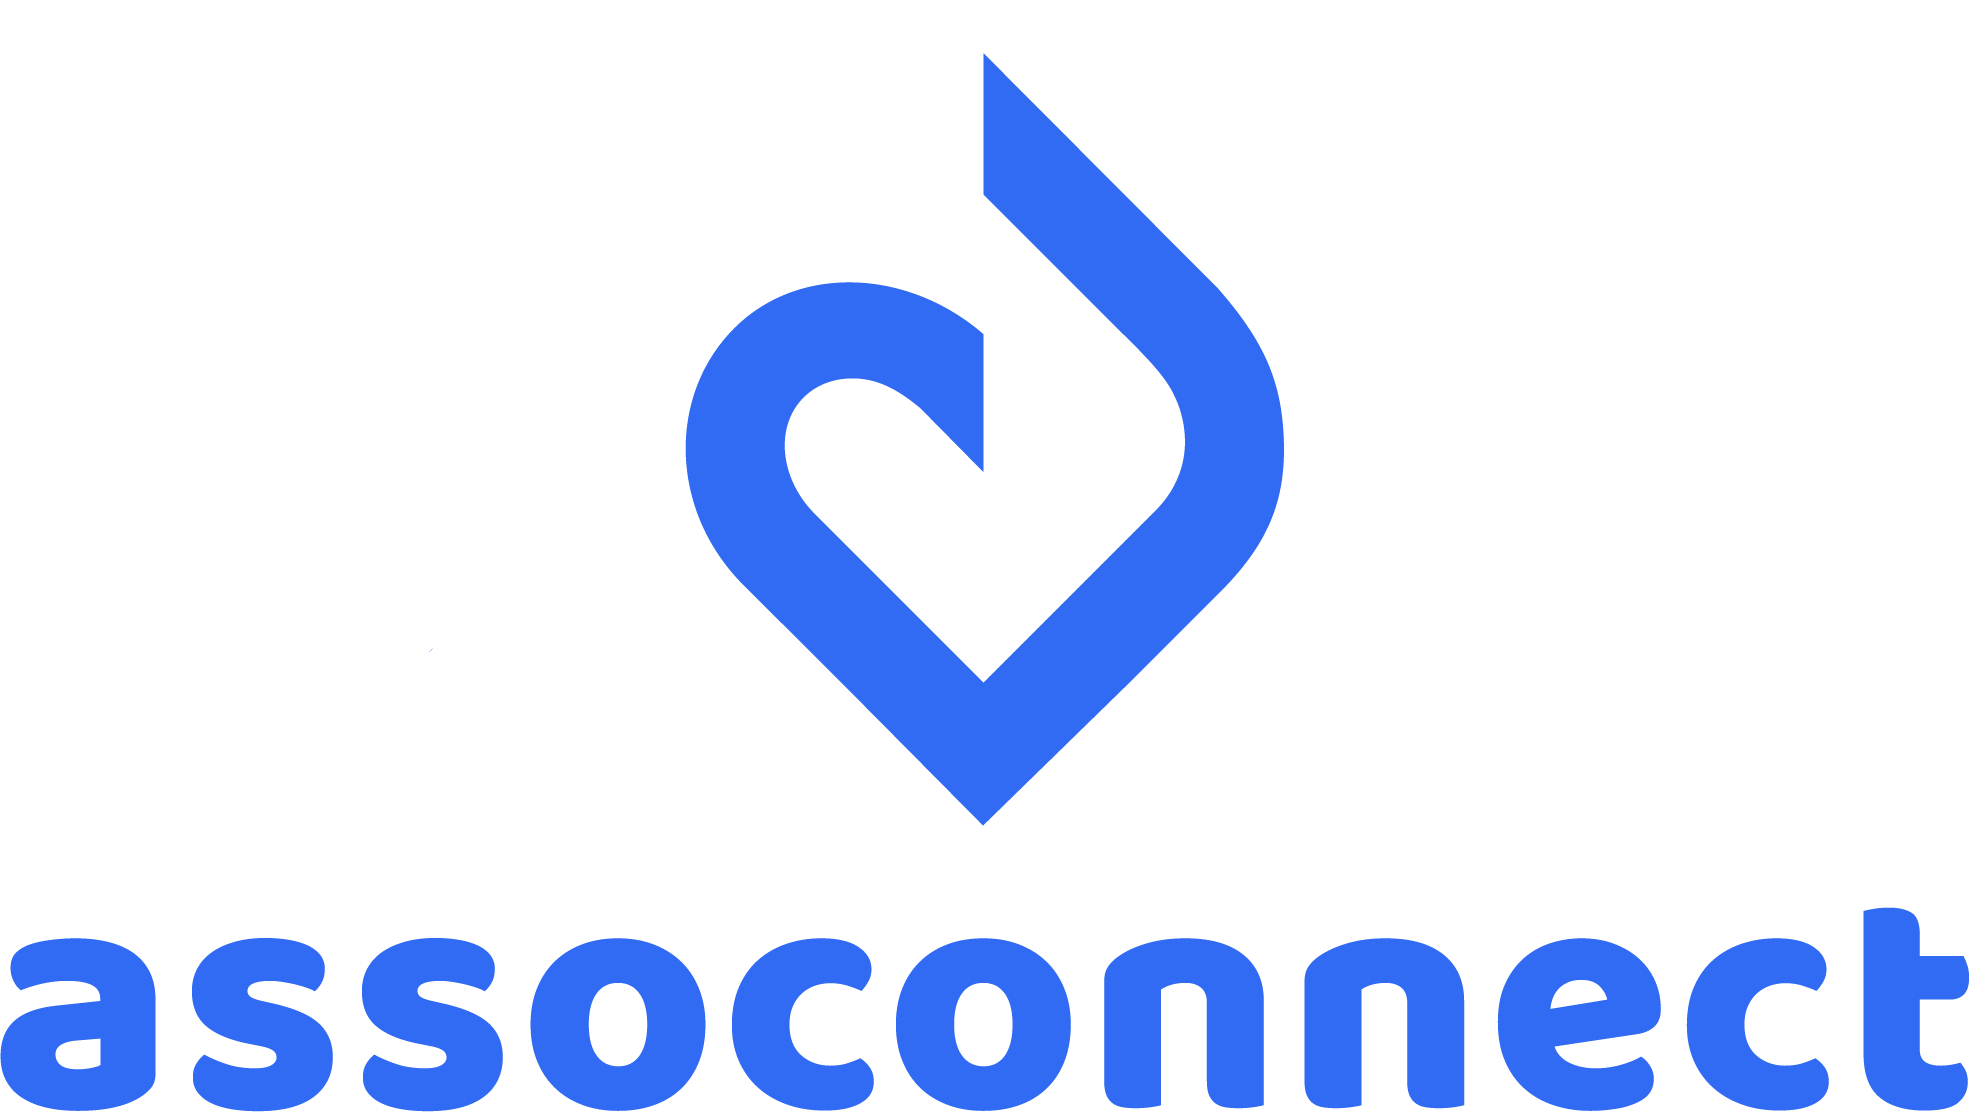 Asso Connect